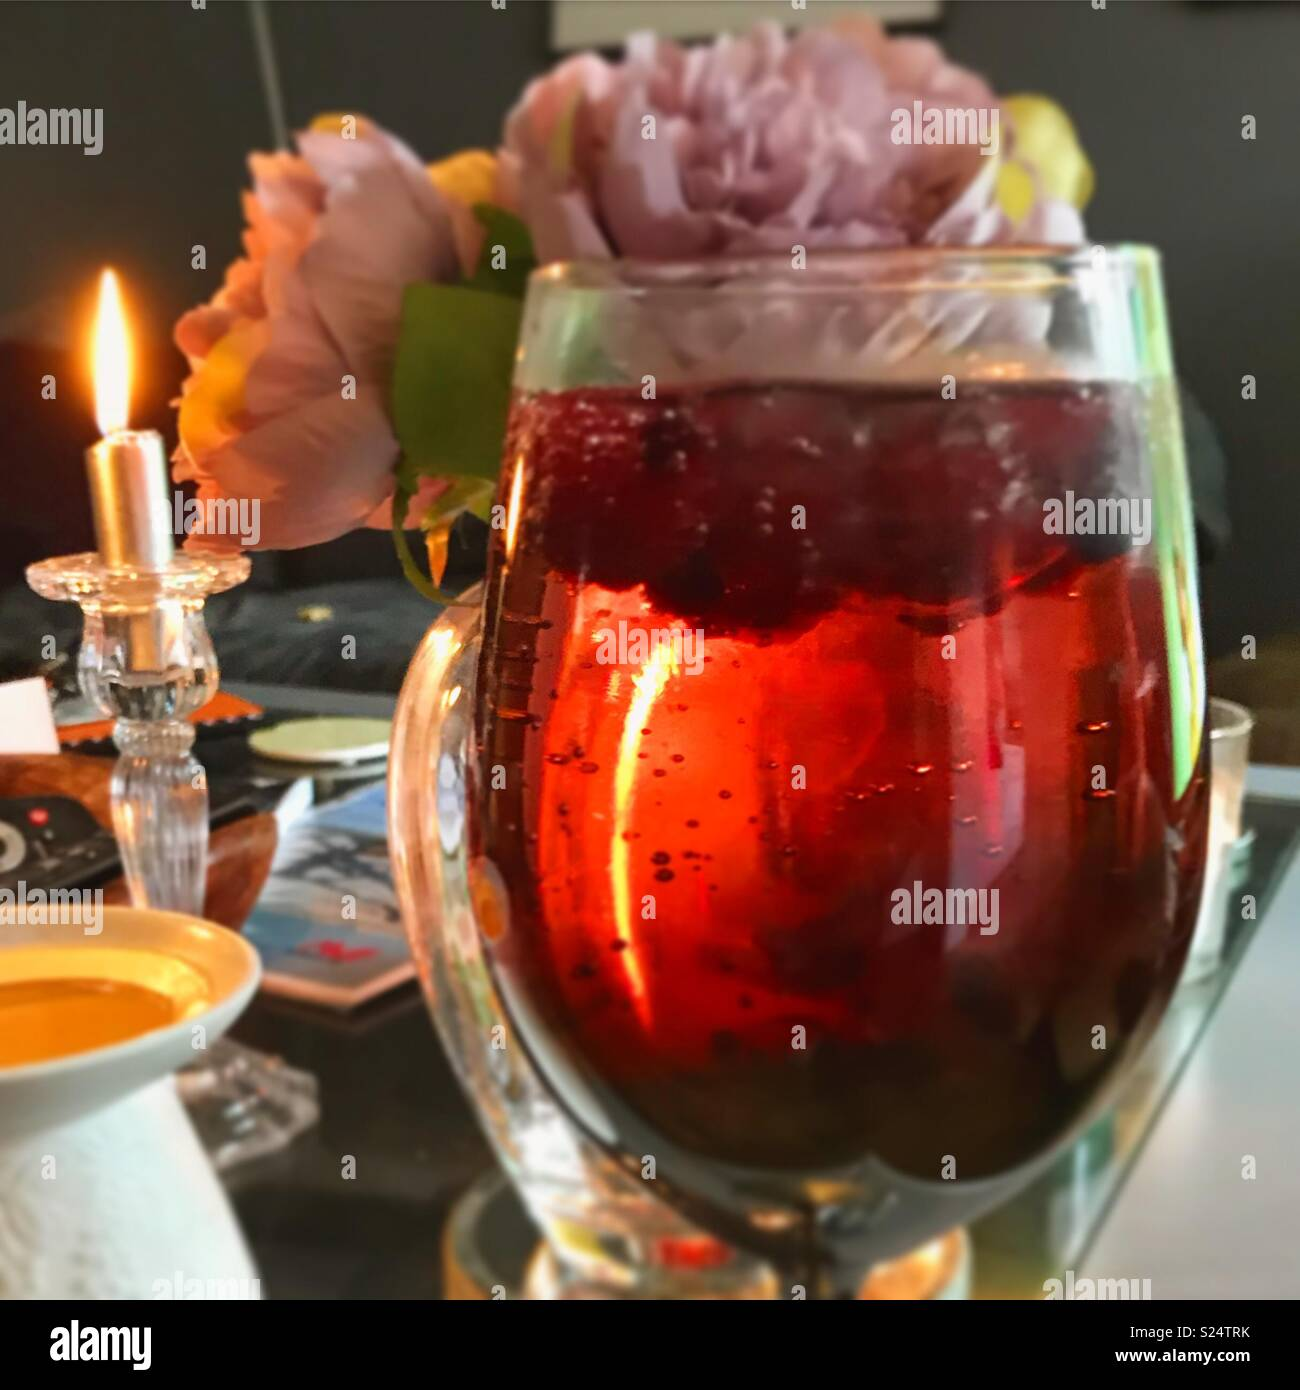 Gin and candles - Stock Image